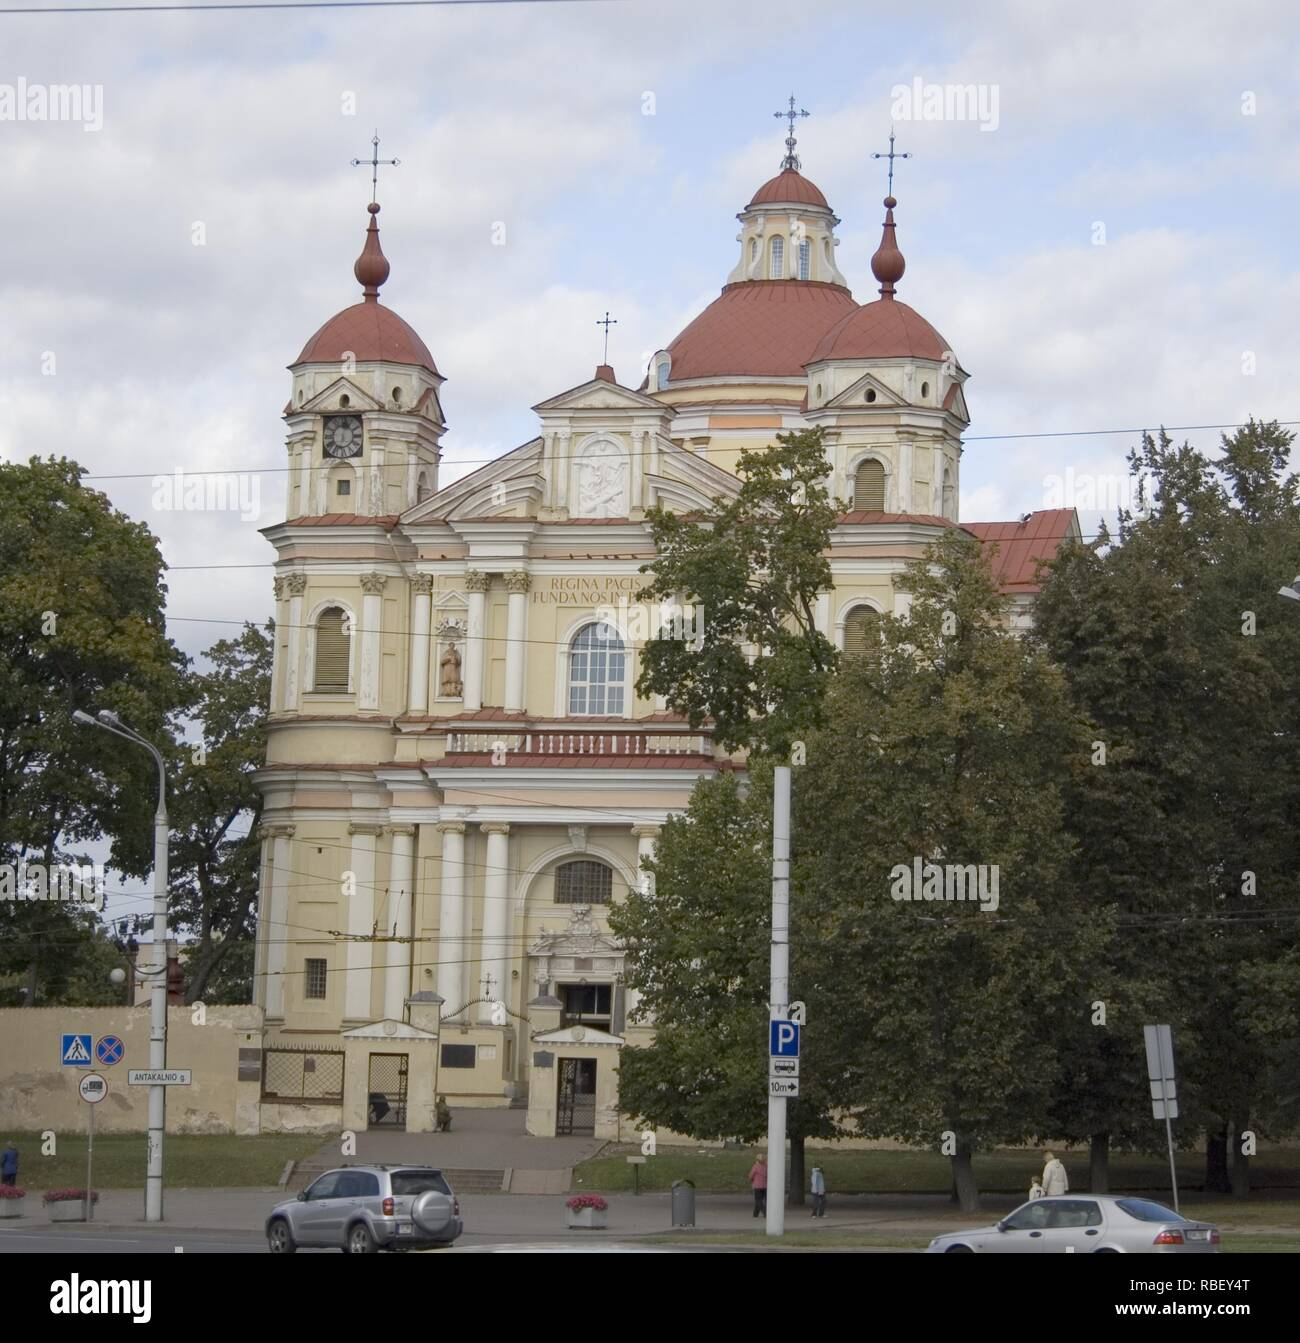 church of st. Peter and St. Paul, Vilnius, Lithuania - Stock Image